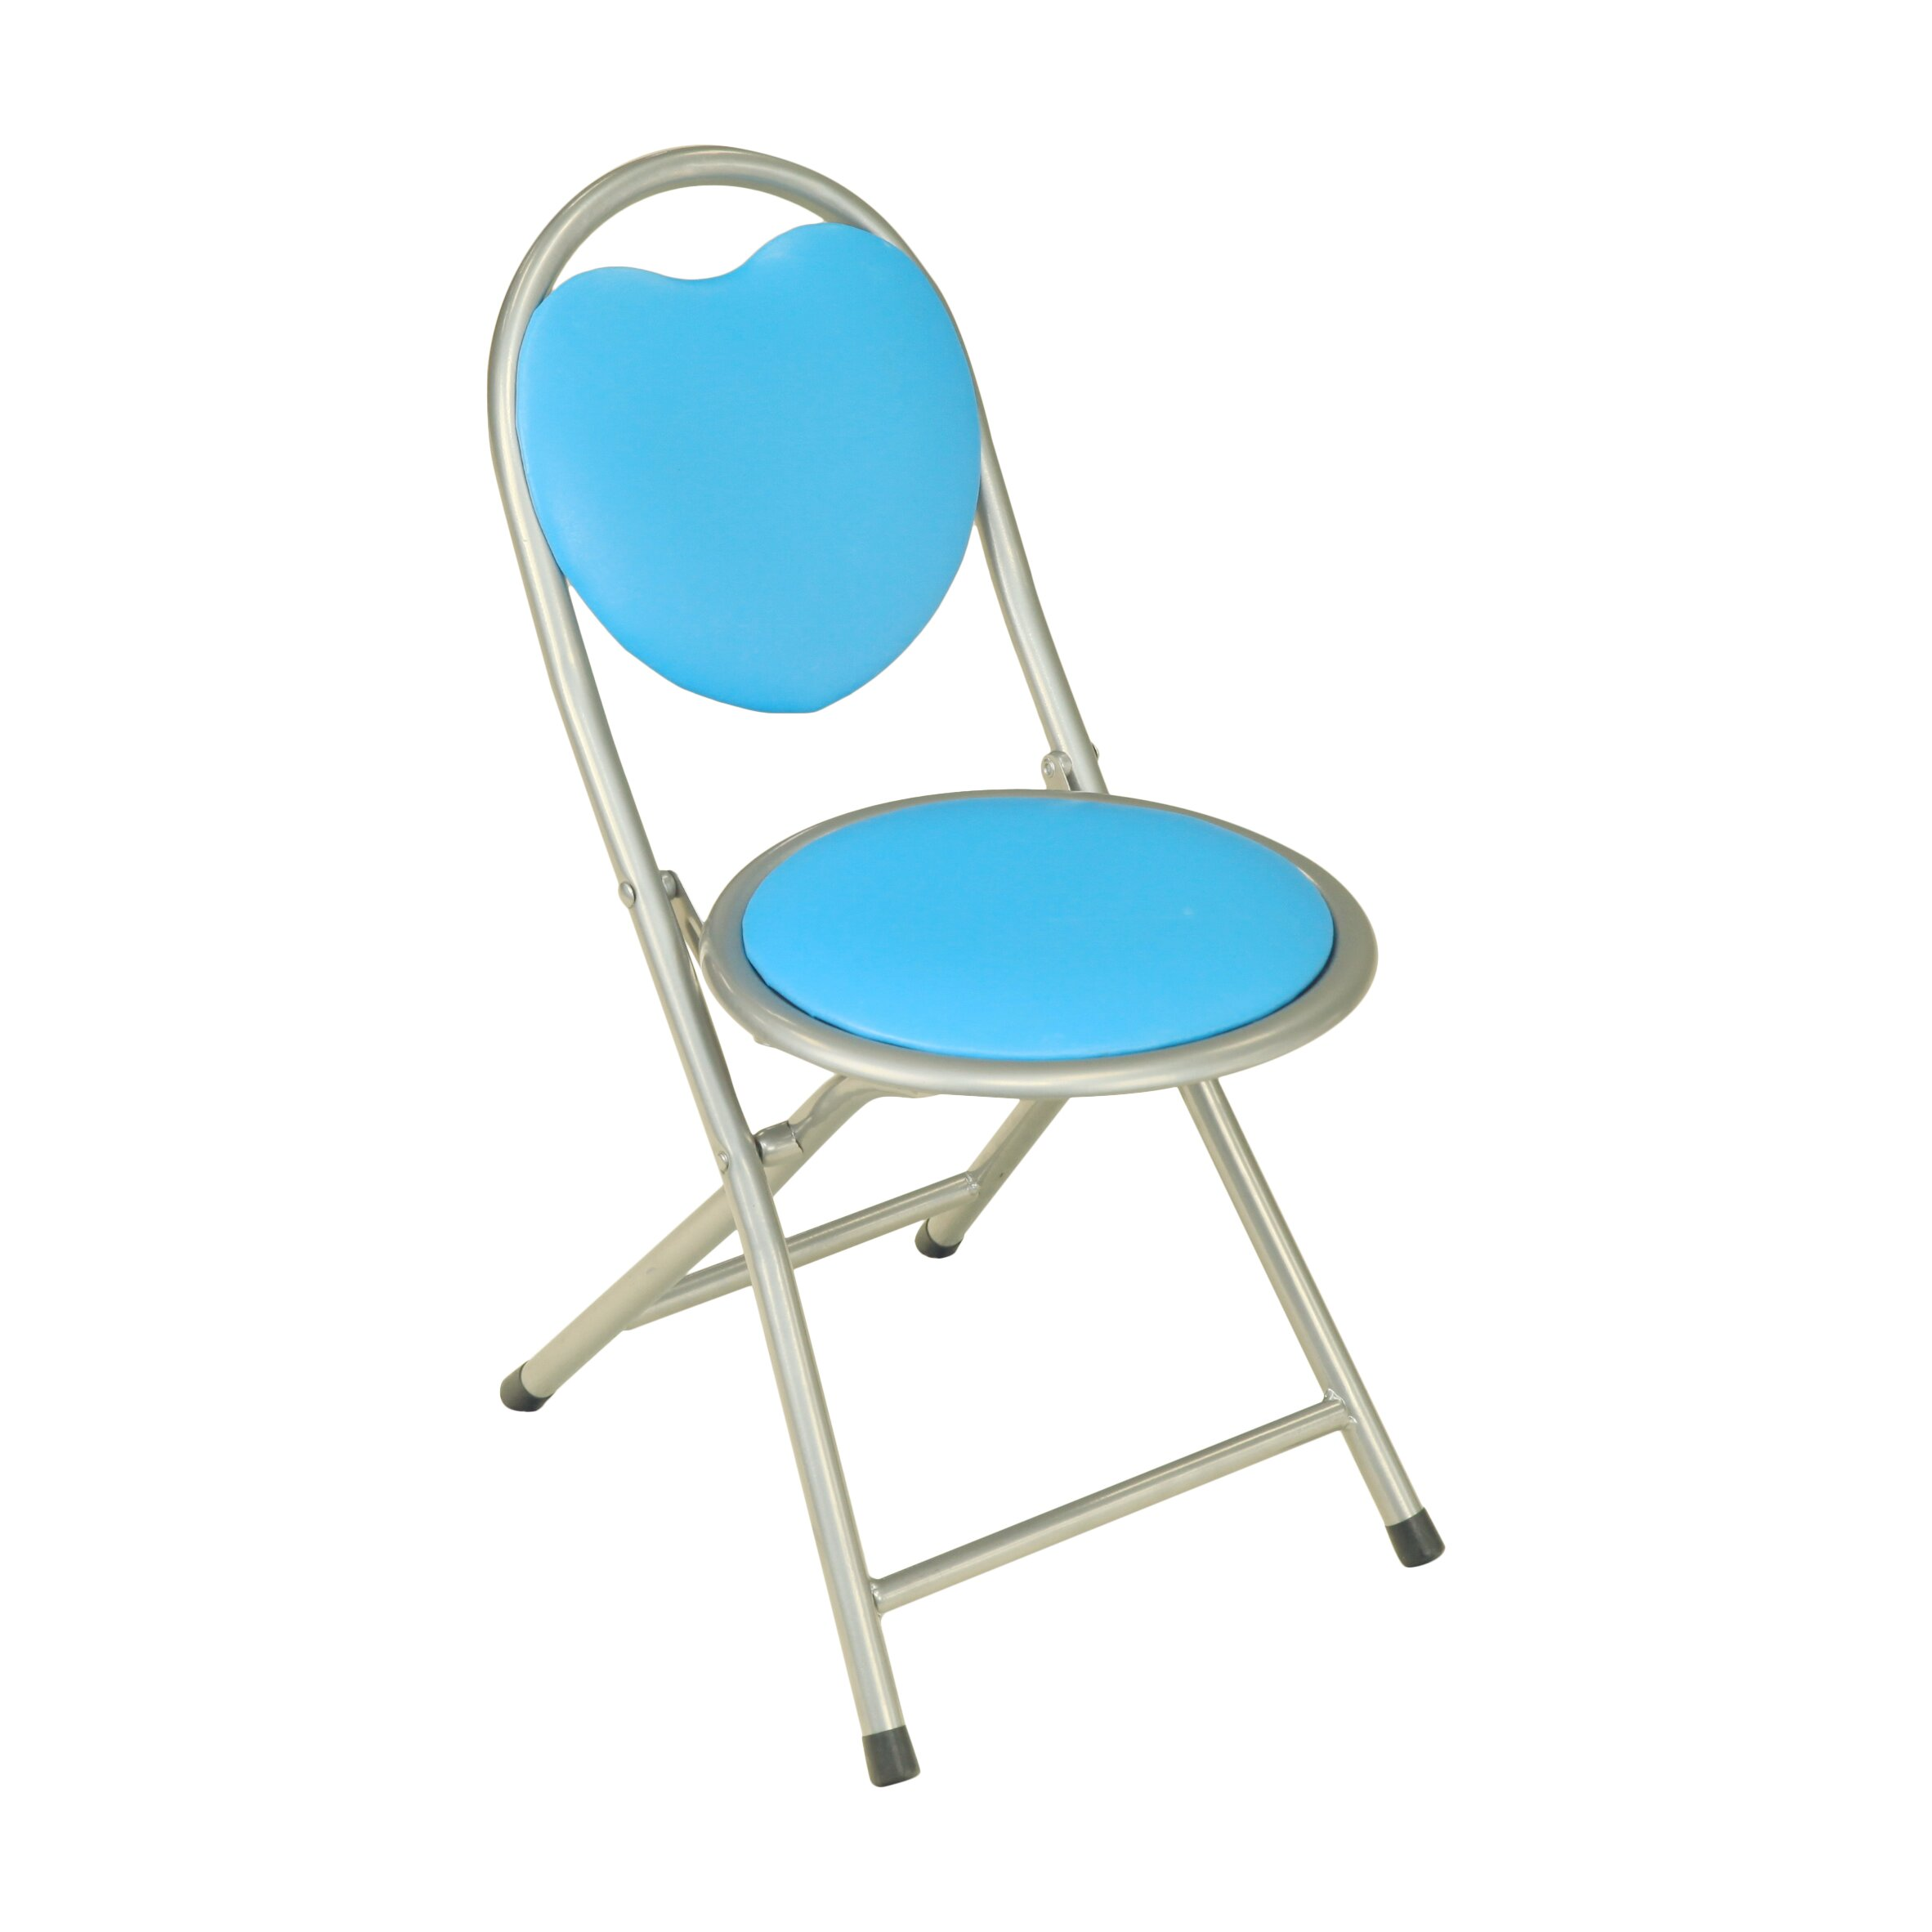 Viv Rae Kids Metal Folding Chair in Blue & Reviews